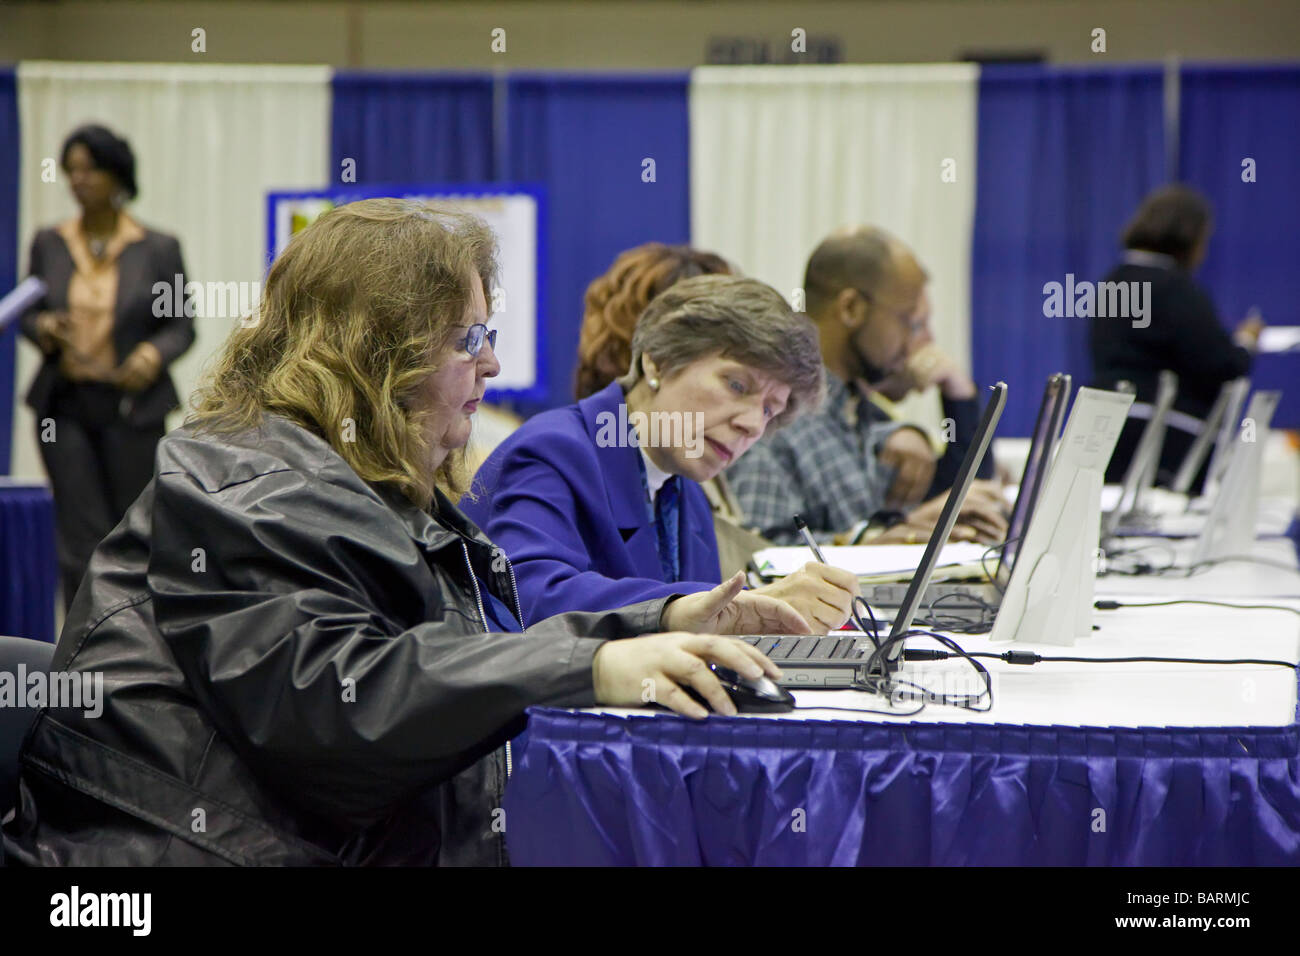 Job Seekers at Job Fair - Stock Image